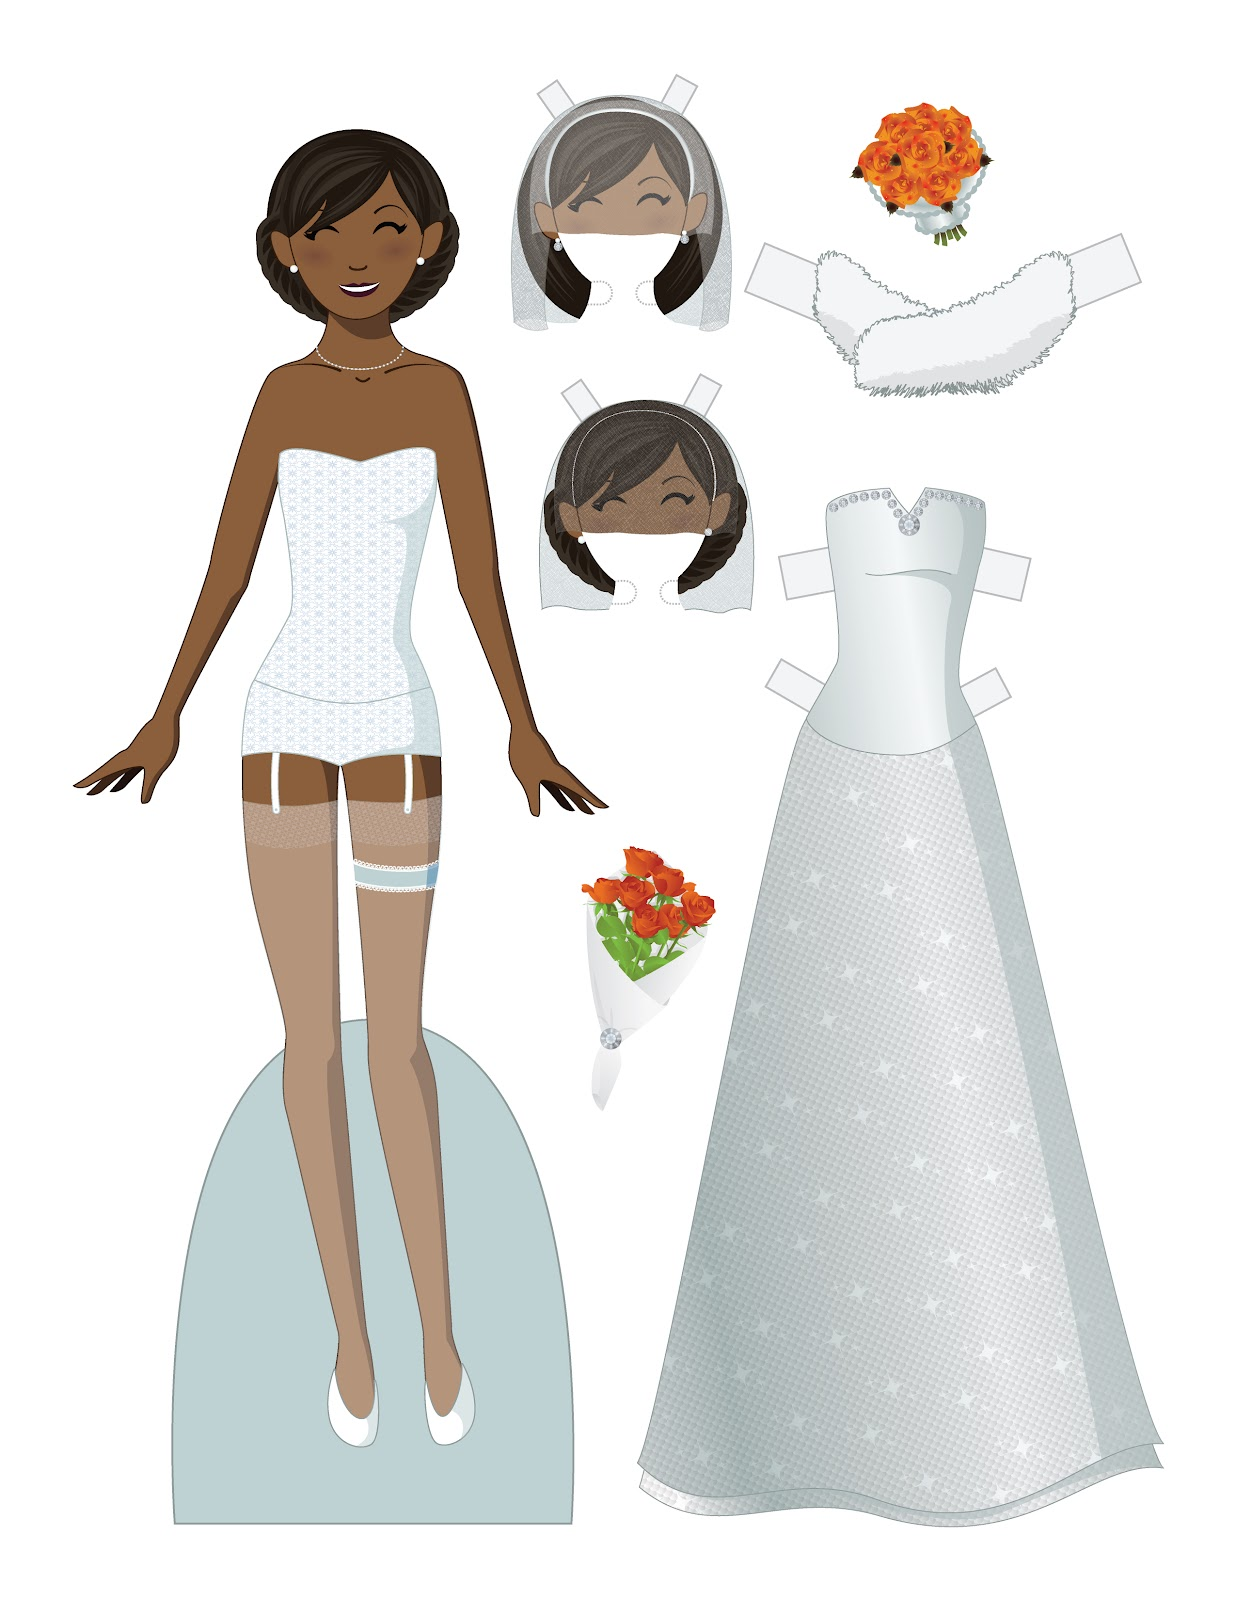 paper doll dresses Lyrics to paper doll song by john mayer: paper doll come try it on and step out of that black chiffon here's a dress of gold and blue sure wa.